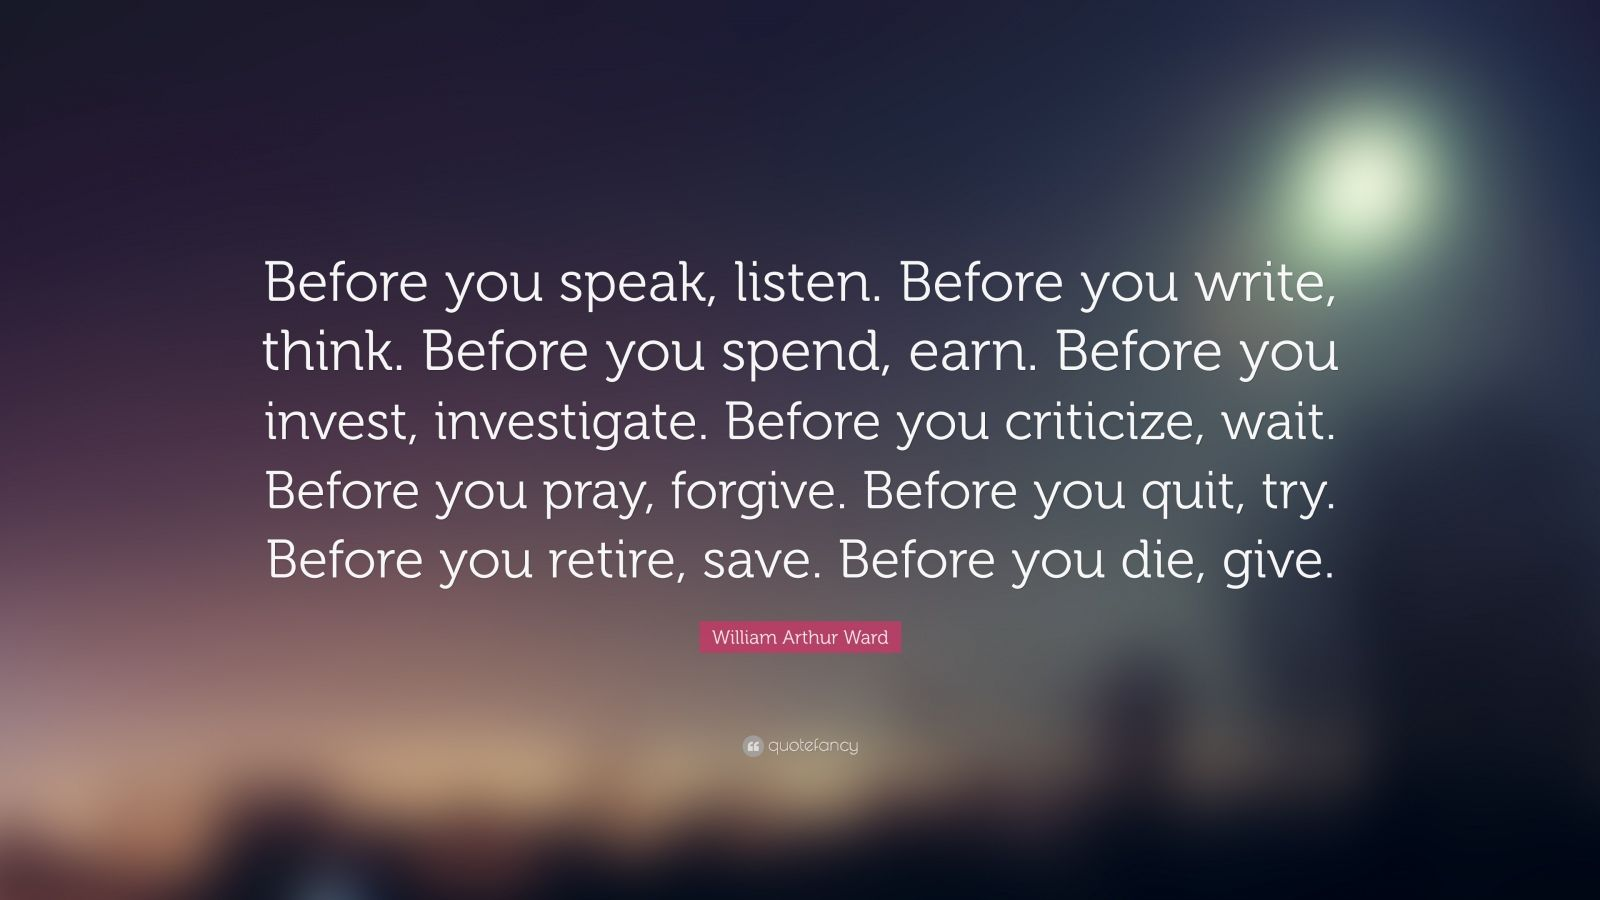 "William Arthur Ward Quote: ""Before you speak, listen. Before you write, think. Before you spend, earn. Before you invest, investigate. Before you criticize, wait. Before you pray, forgive. Before you quit, try. Before you retire, save. Before you die, give."""